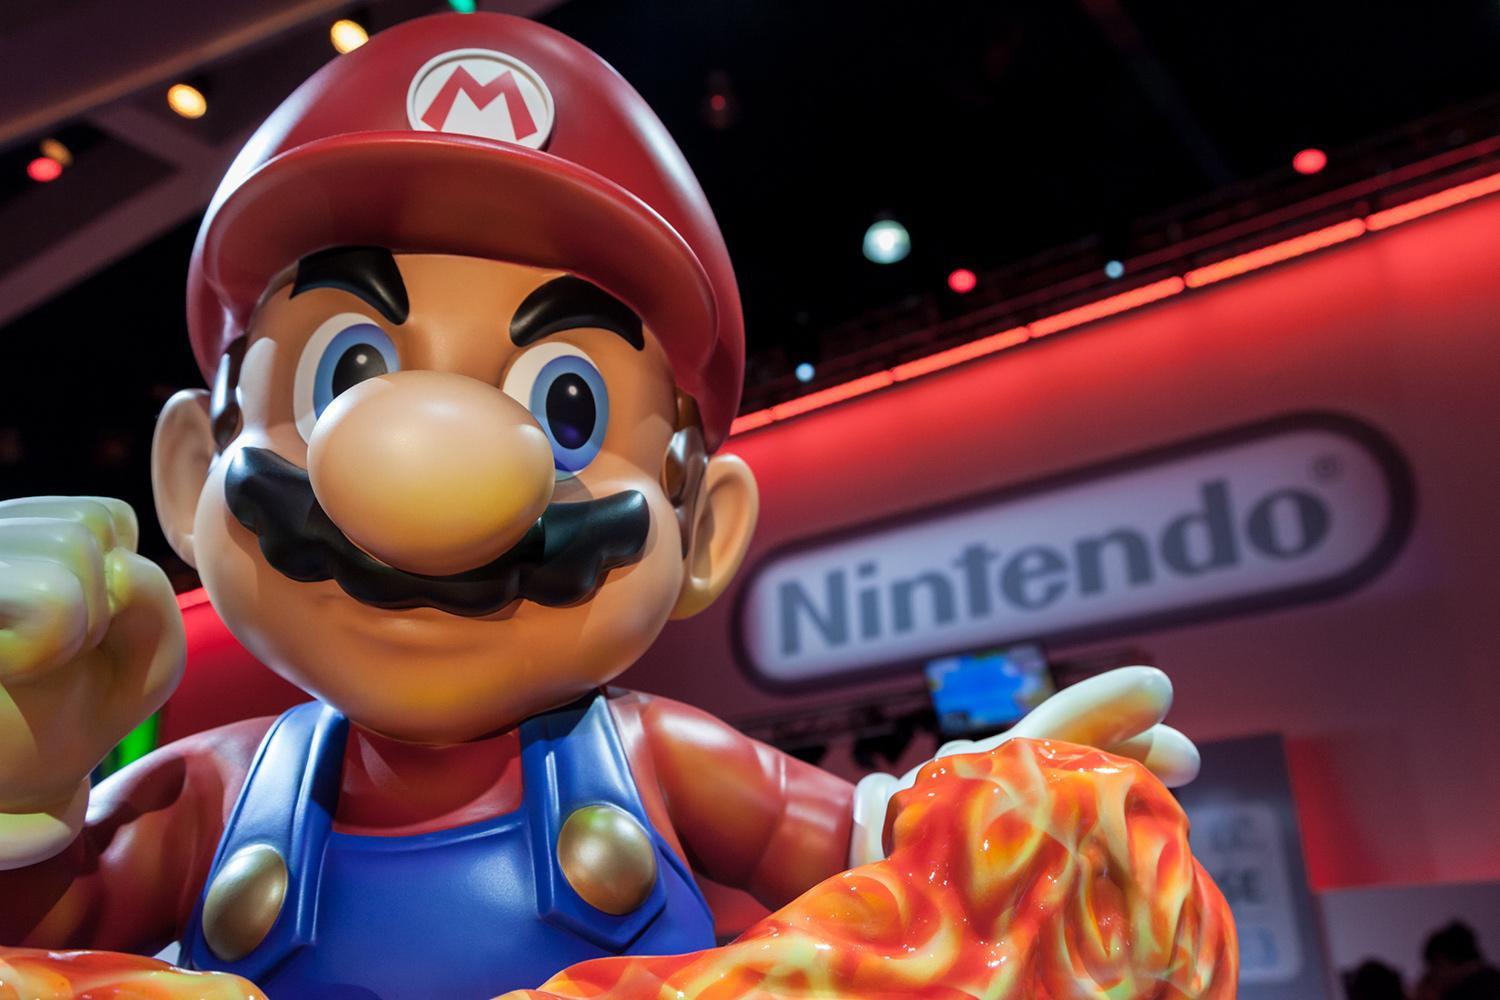 Nintendo NX rumor round-up: A portable console with detachable controllers?